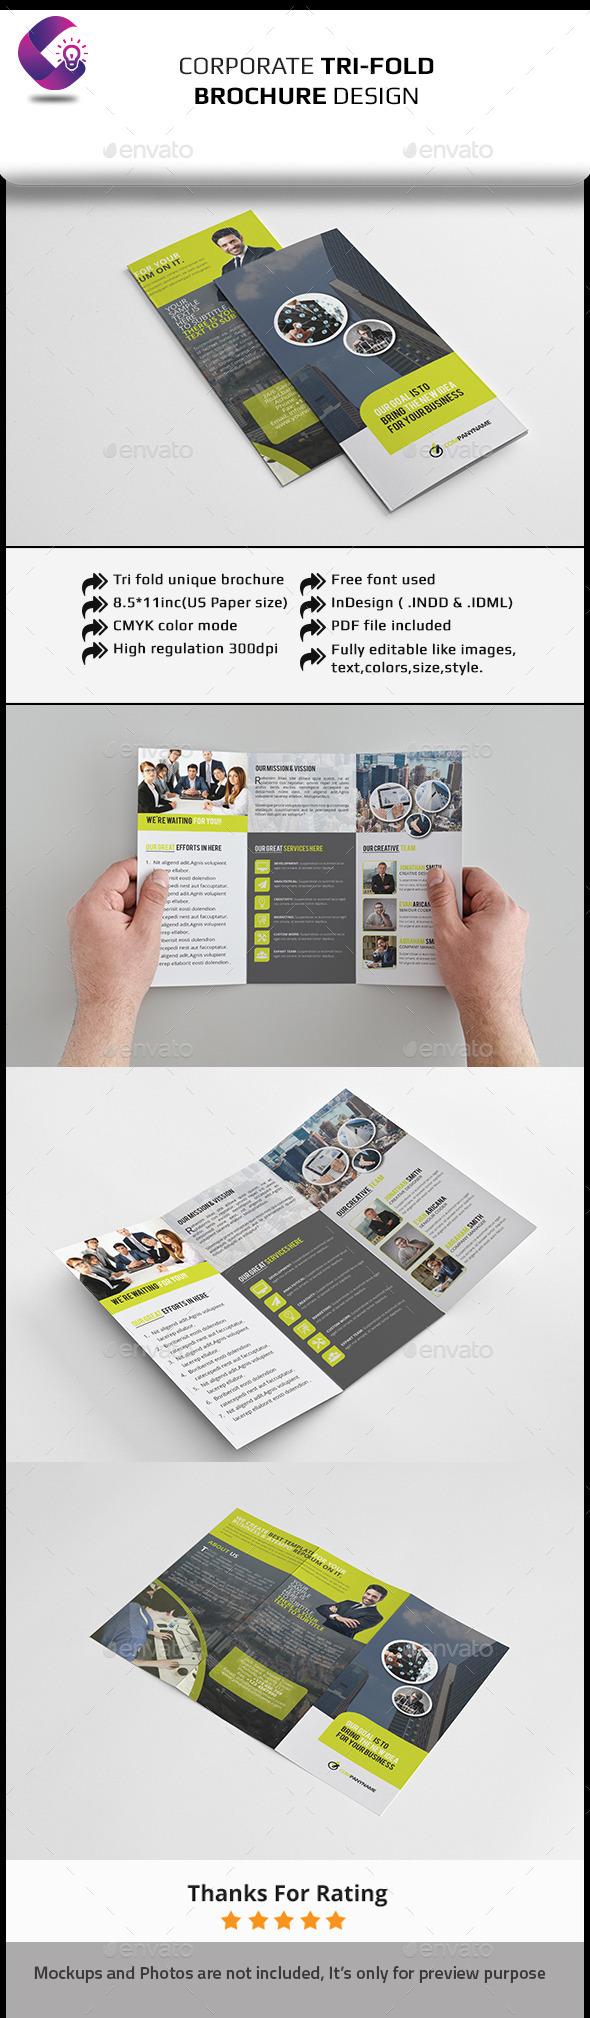 tri fold brochure indesign template design download http